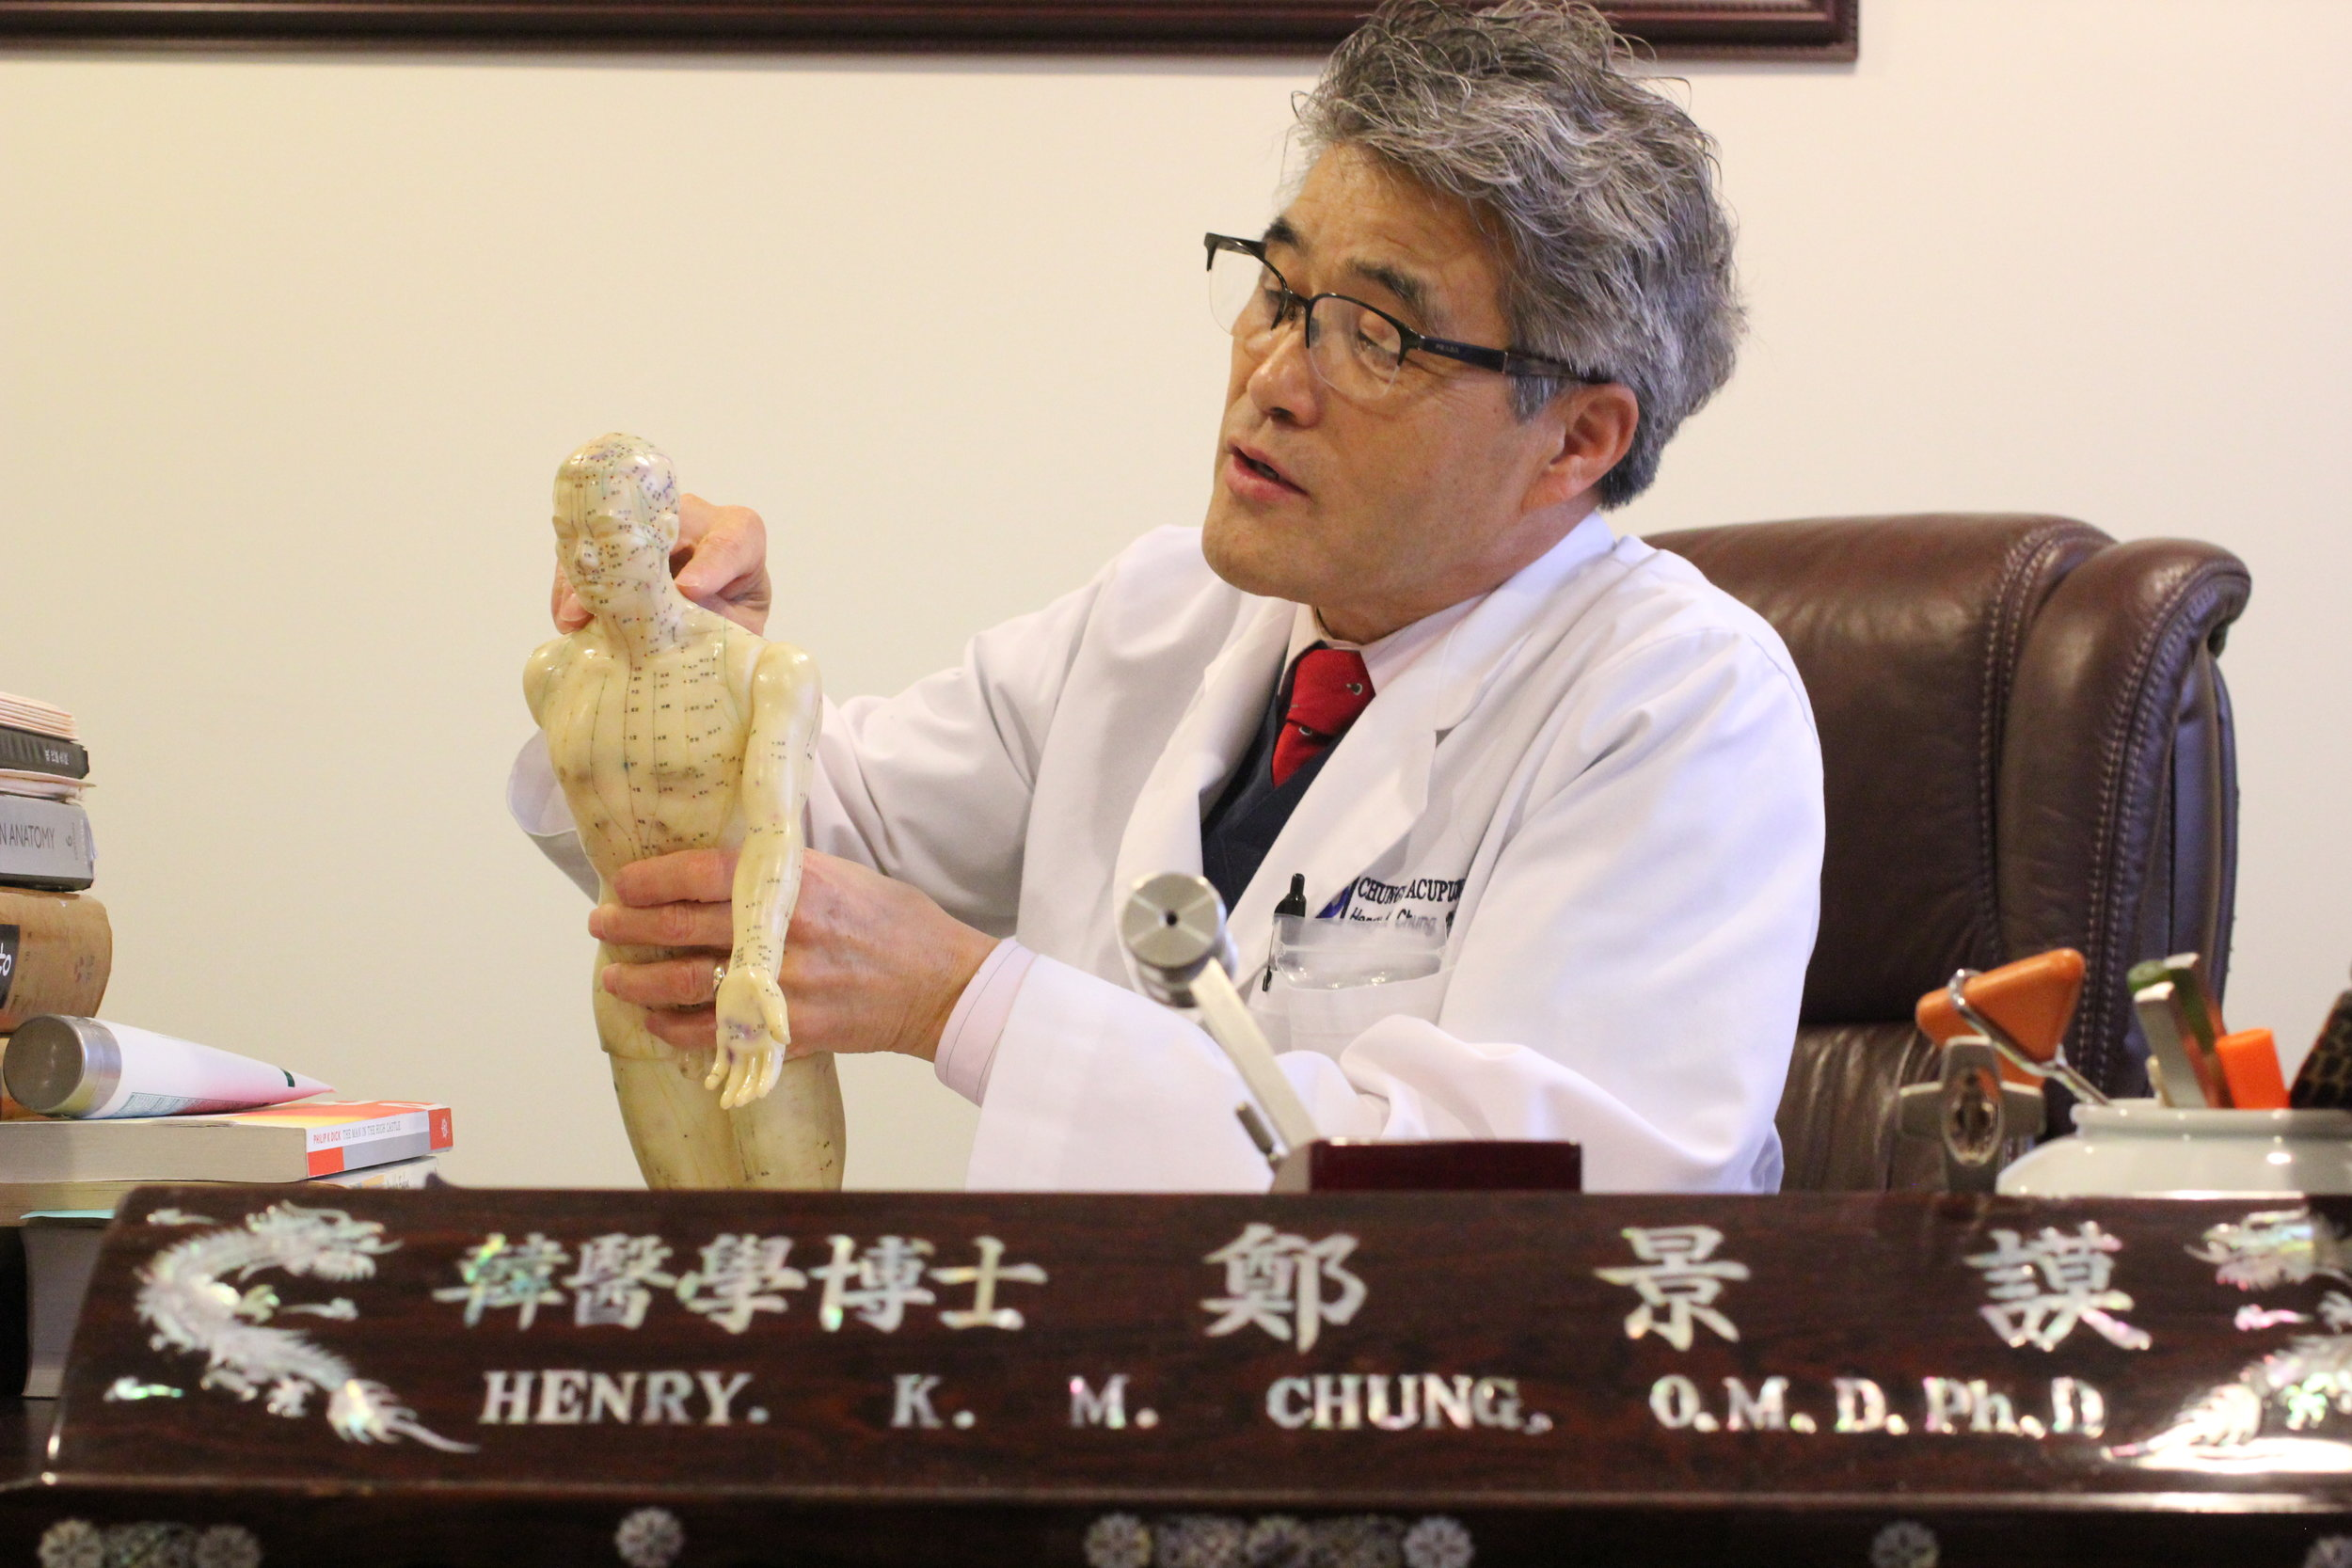 Dr. Chung licensed acupuncture professional explaining his treatment plan to patient